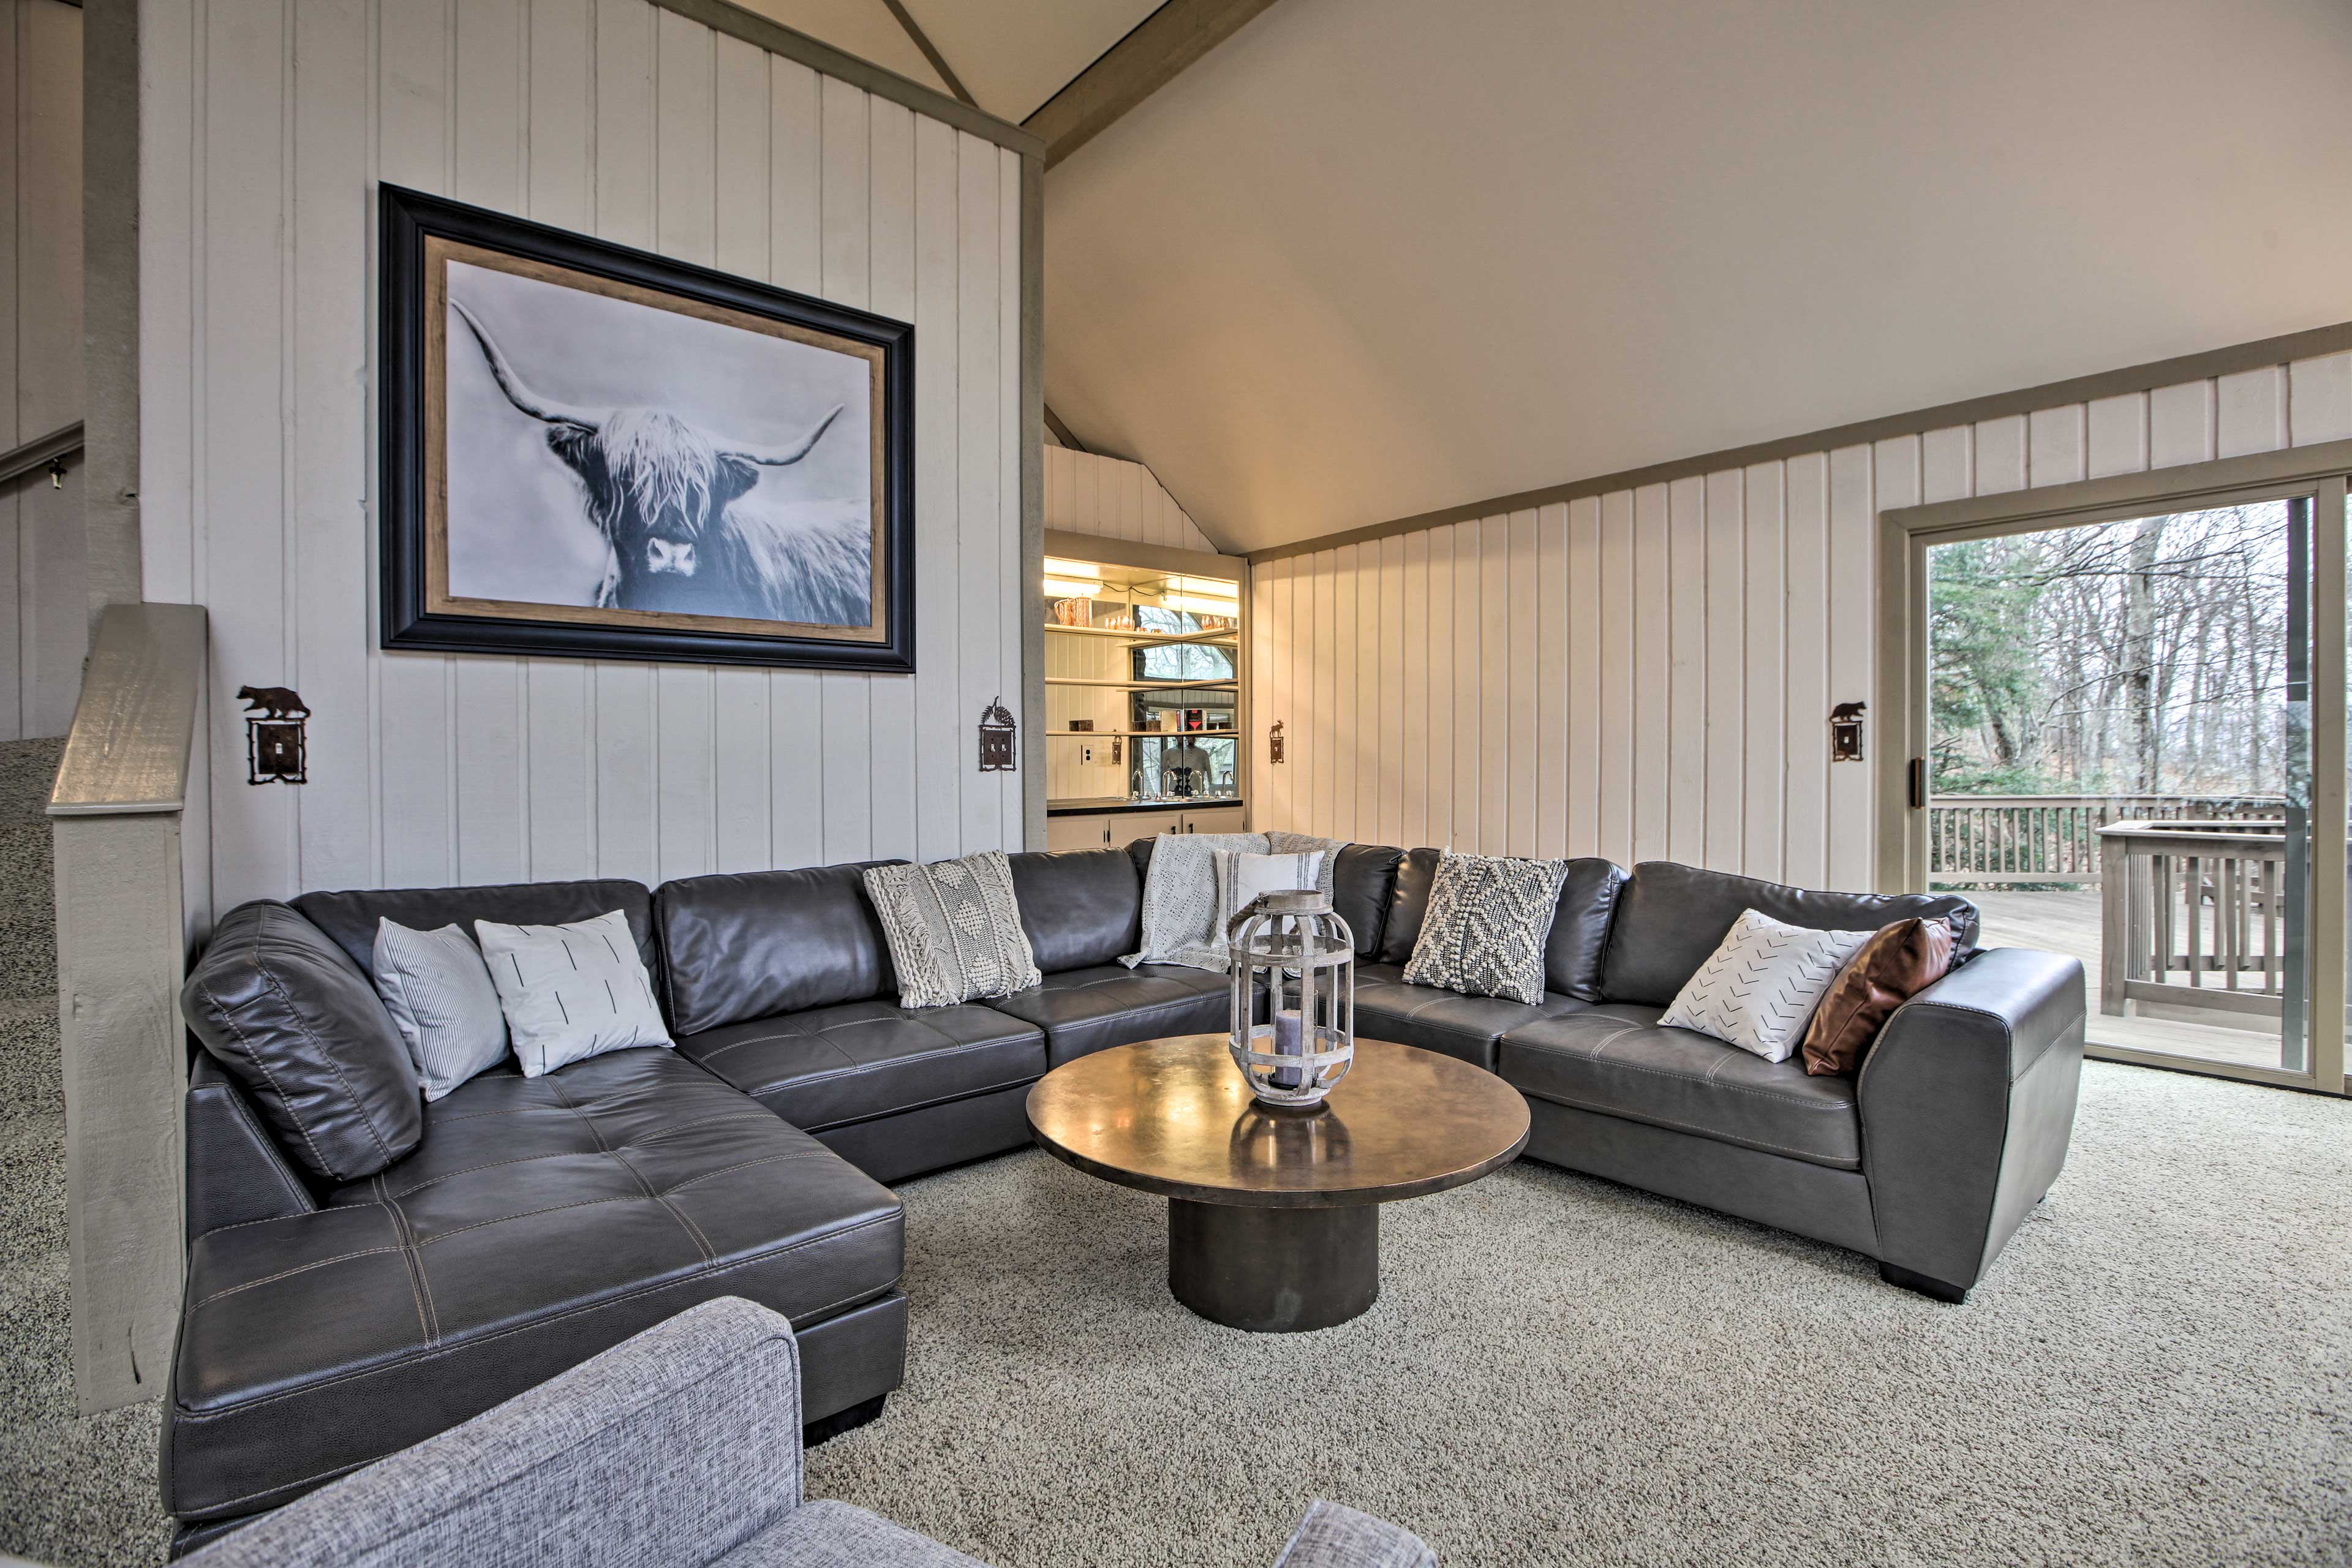 The living room has easy access to the deck.